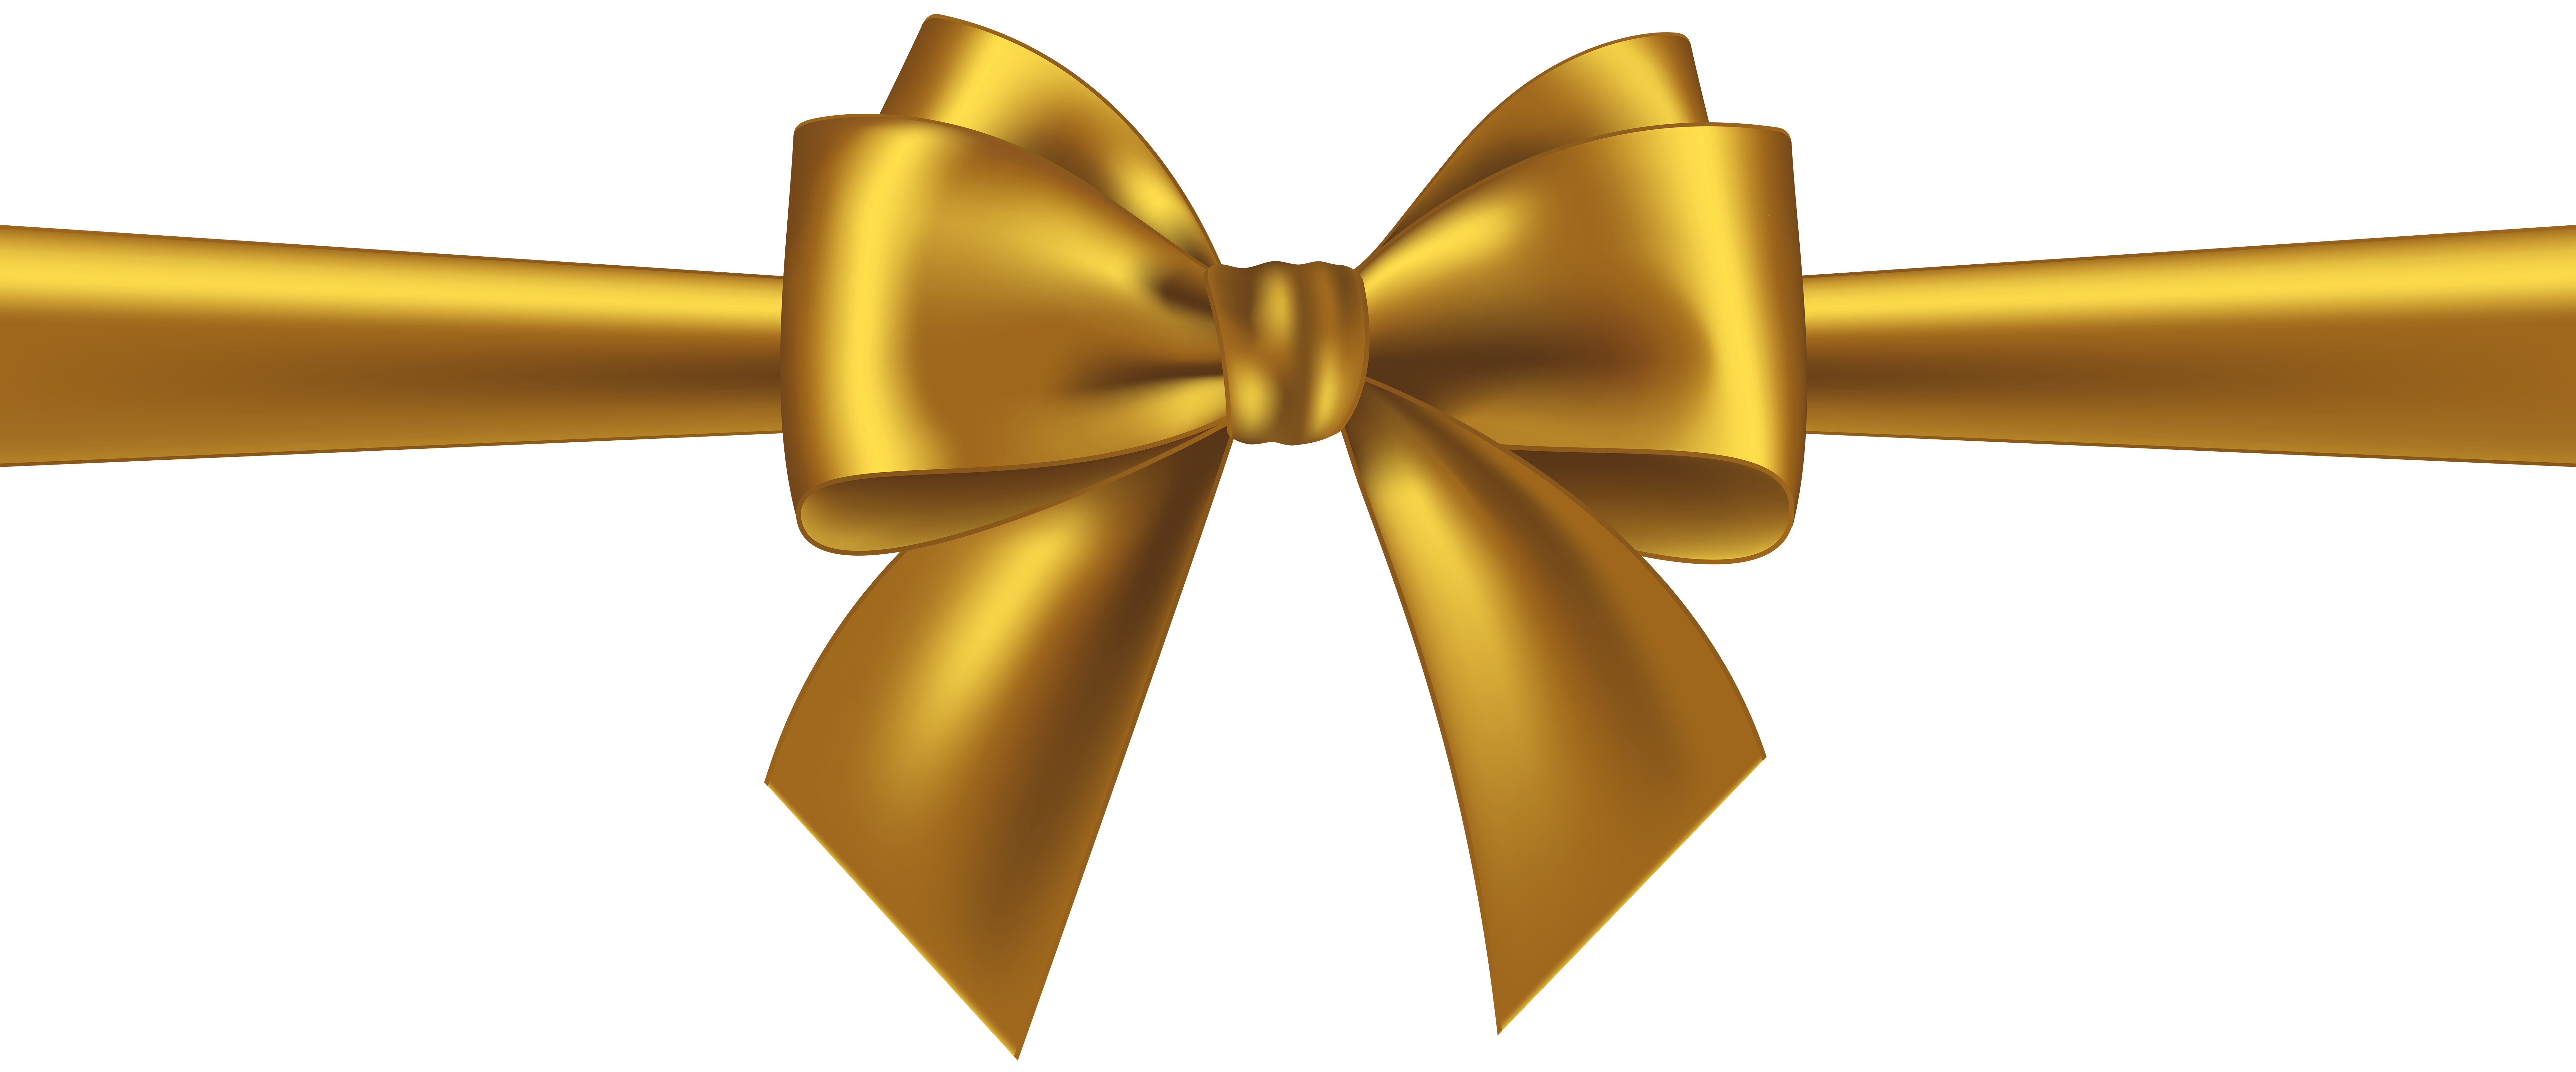 Gold Bow Transparent Clip Art Gallery Yopriceville High Quality Images And Transparent Png Free Clipart Clip Art Free Clip Art Bow Clipart